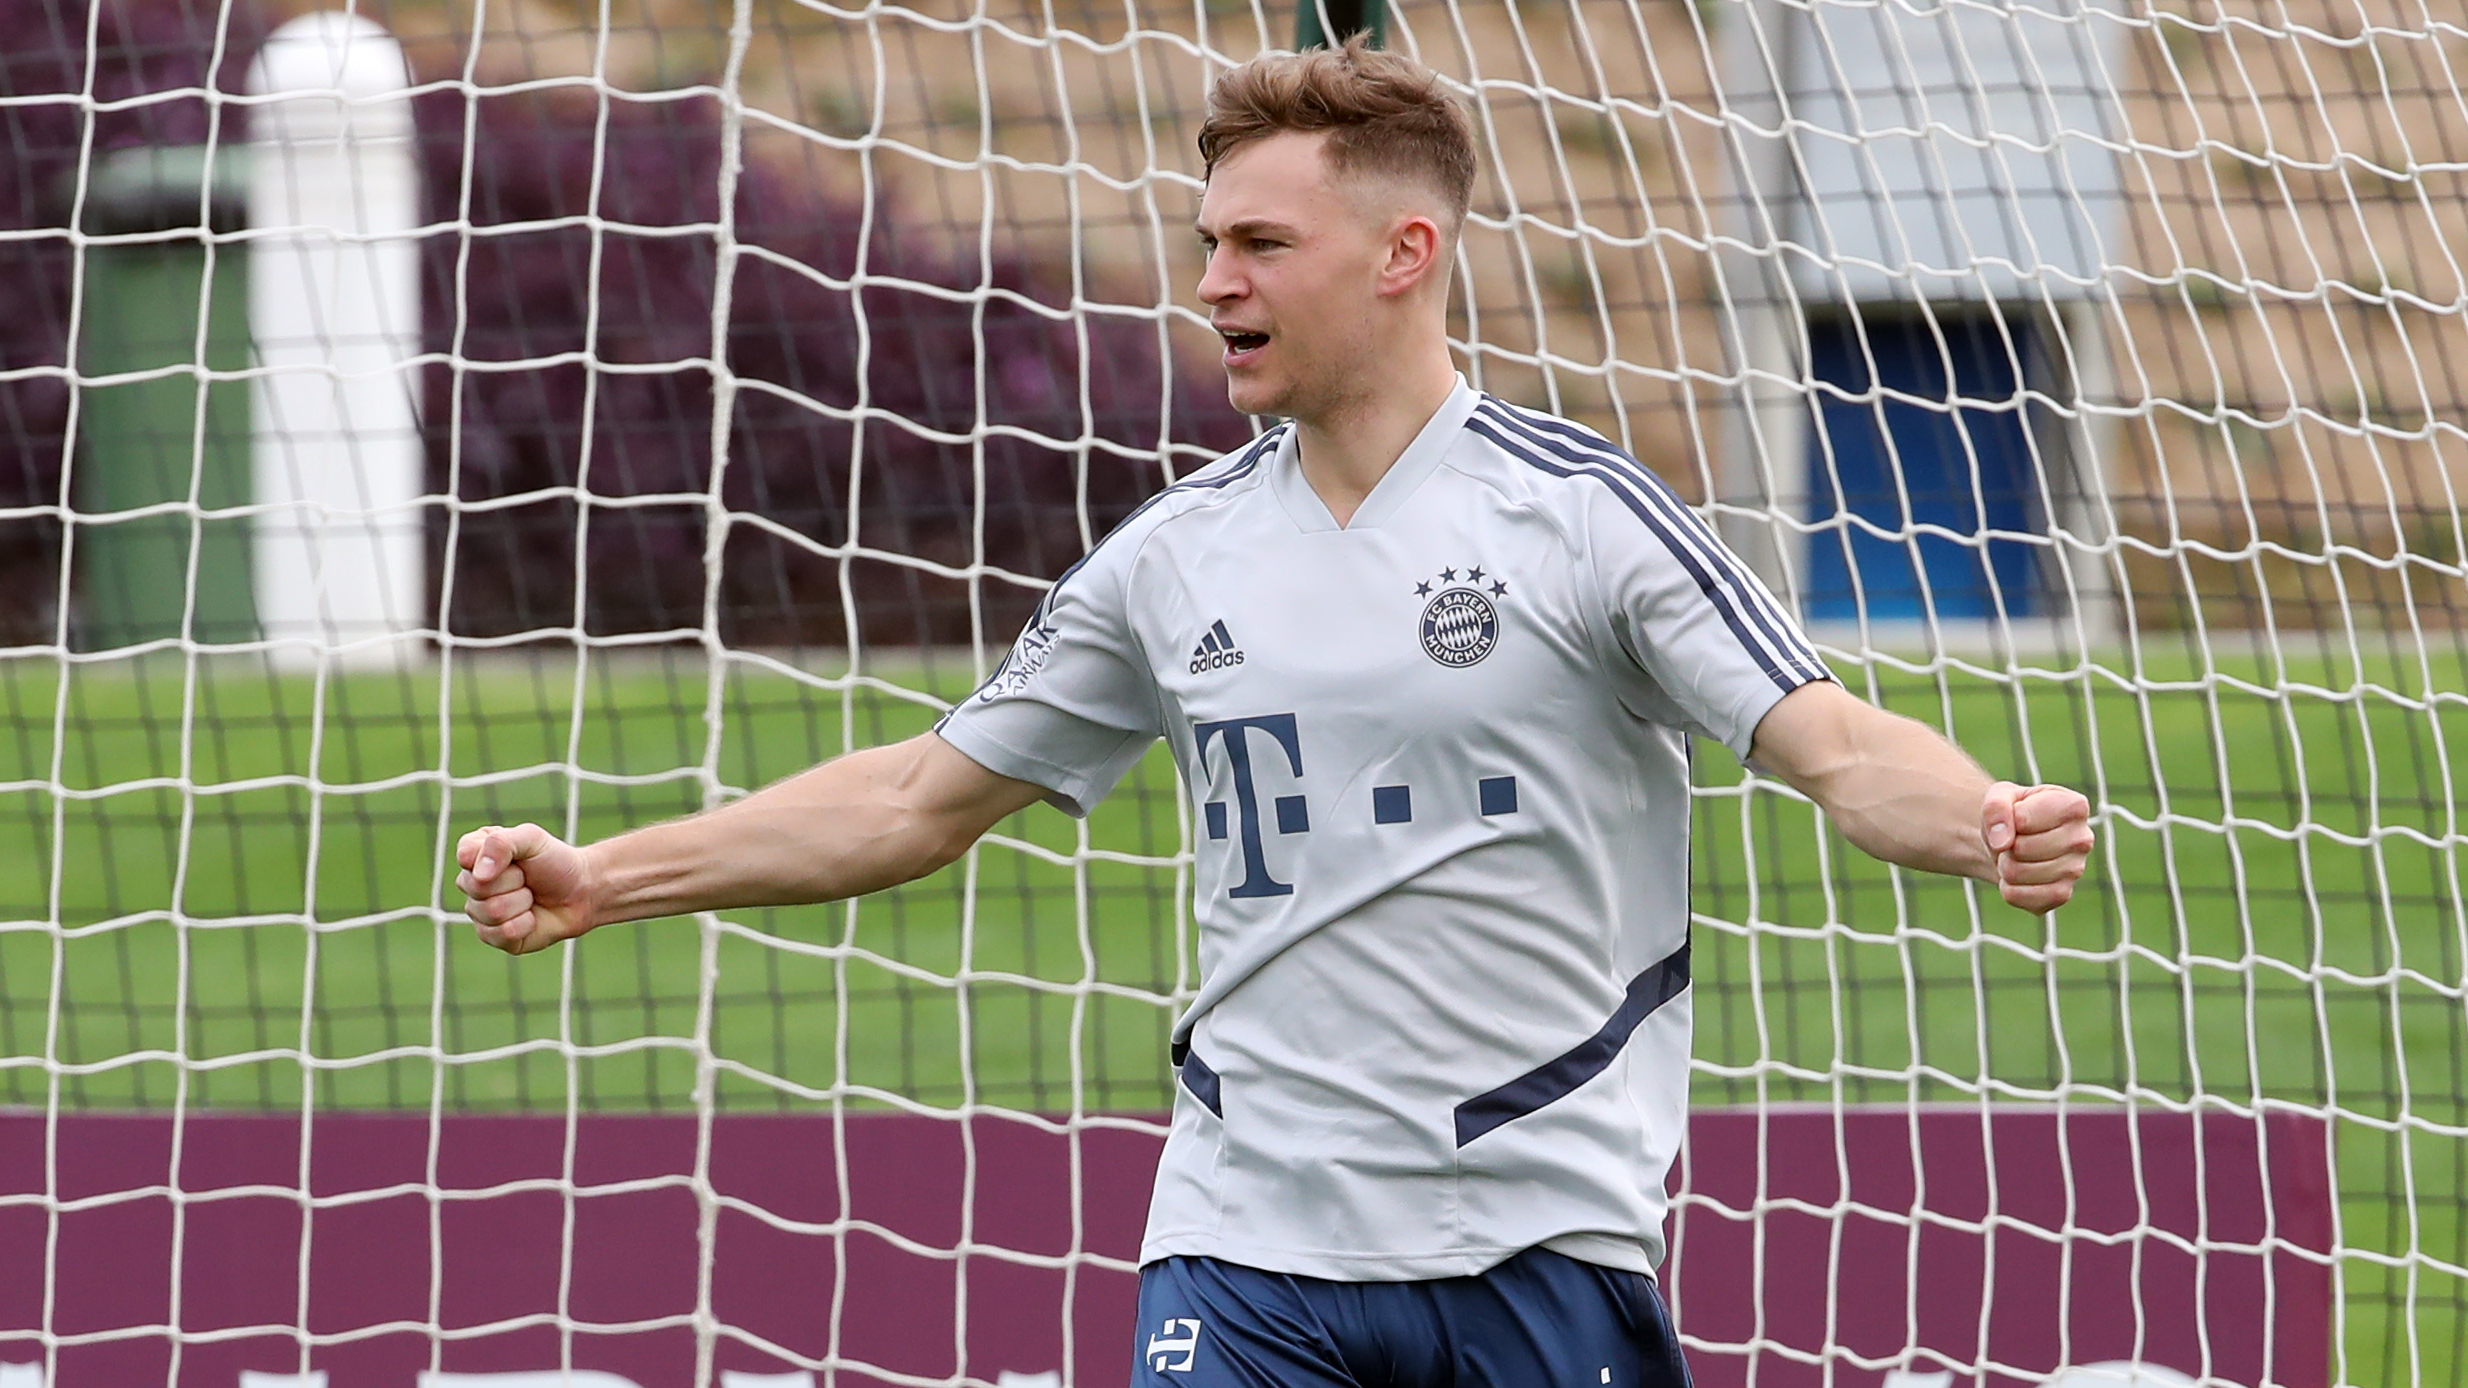 Bayern Munich's squad is not big enough - Kimmich